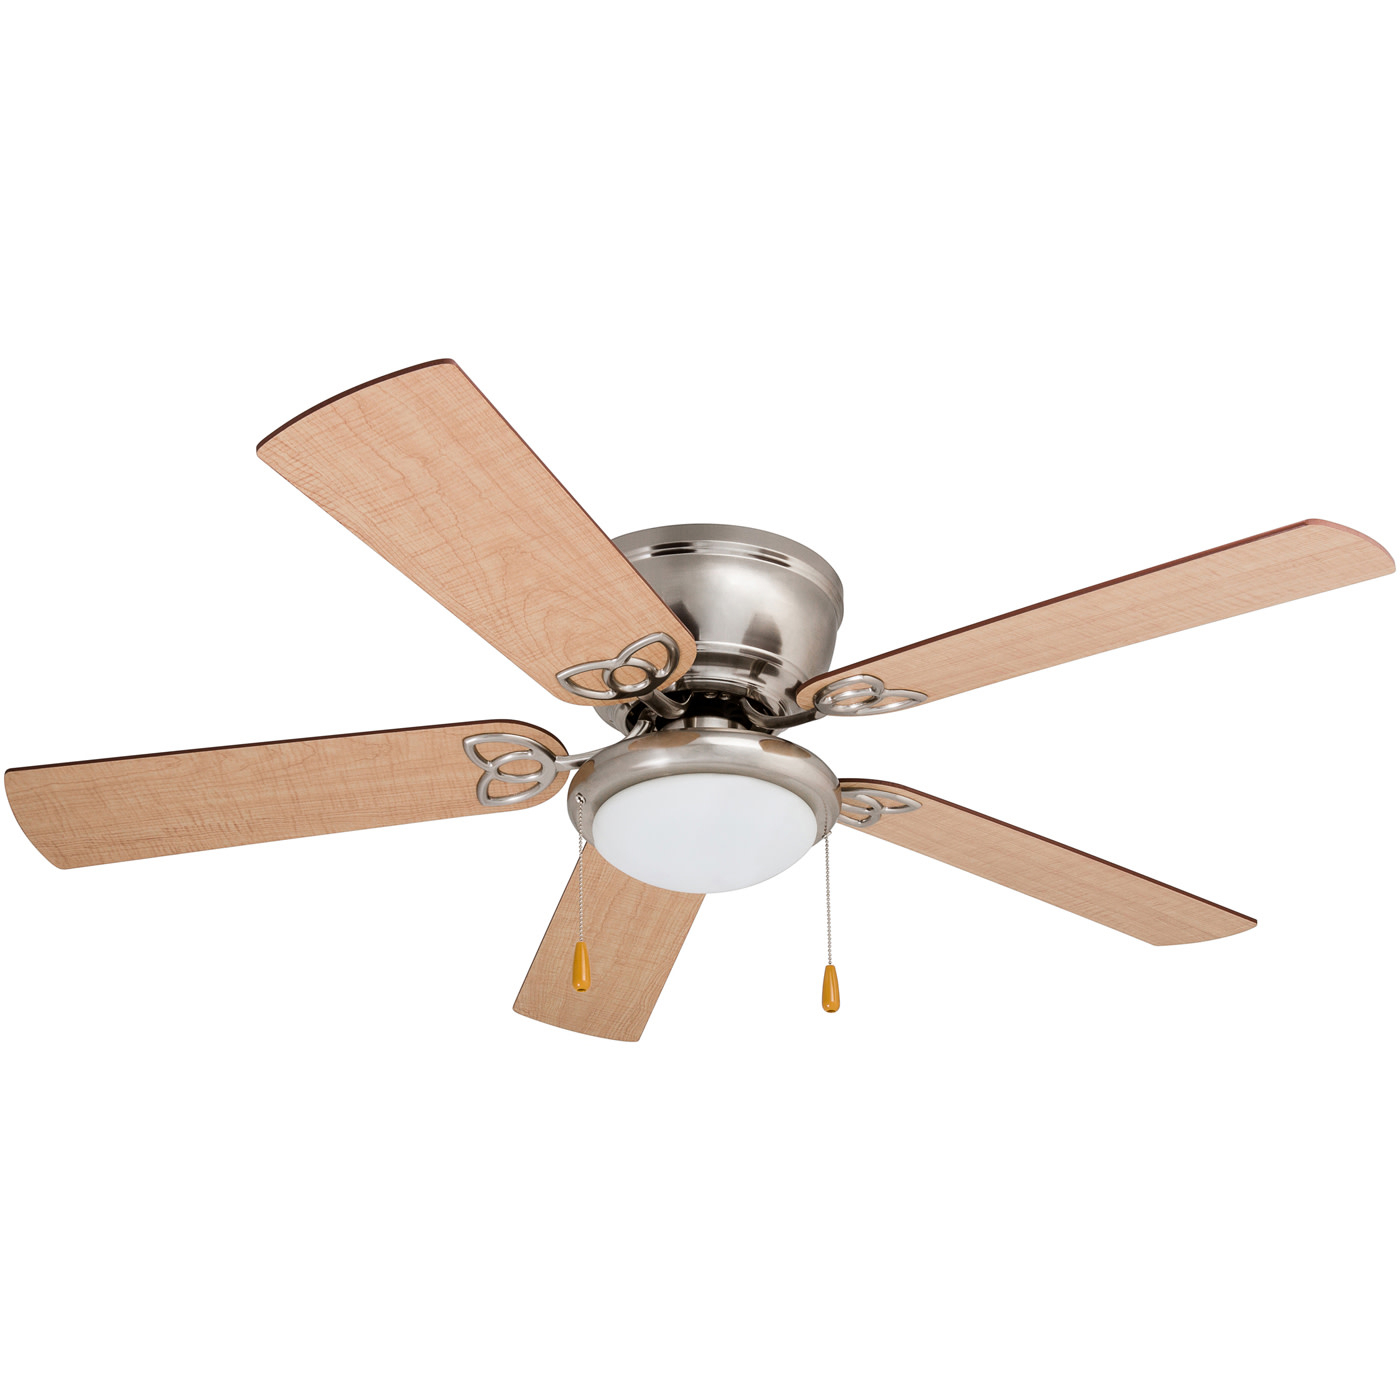 "Famous Details About Prominence Home Benton Benton 52"" 5 Blade Led Hugger Indoor Ceiling Fan With For Cedarton 5 Blade Led Ceiling Fans (View 18 of 20)"